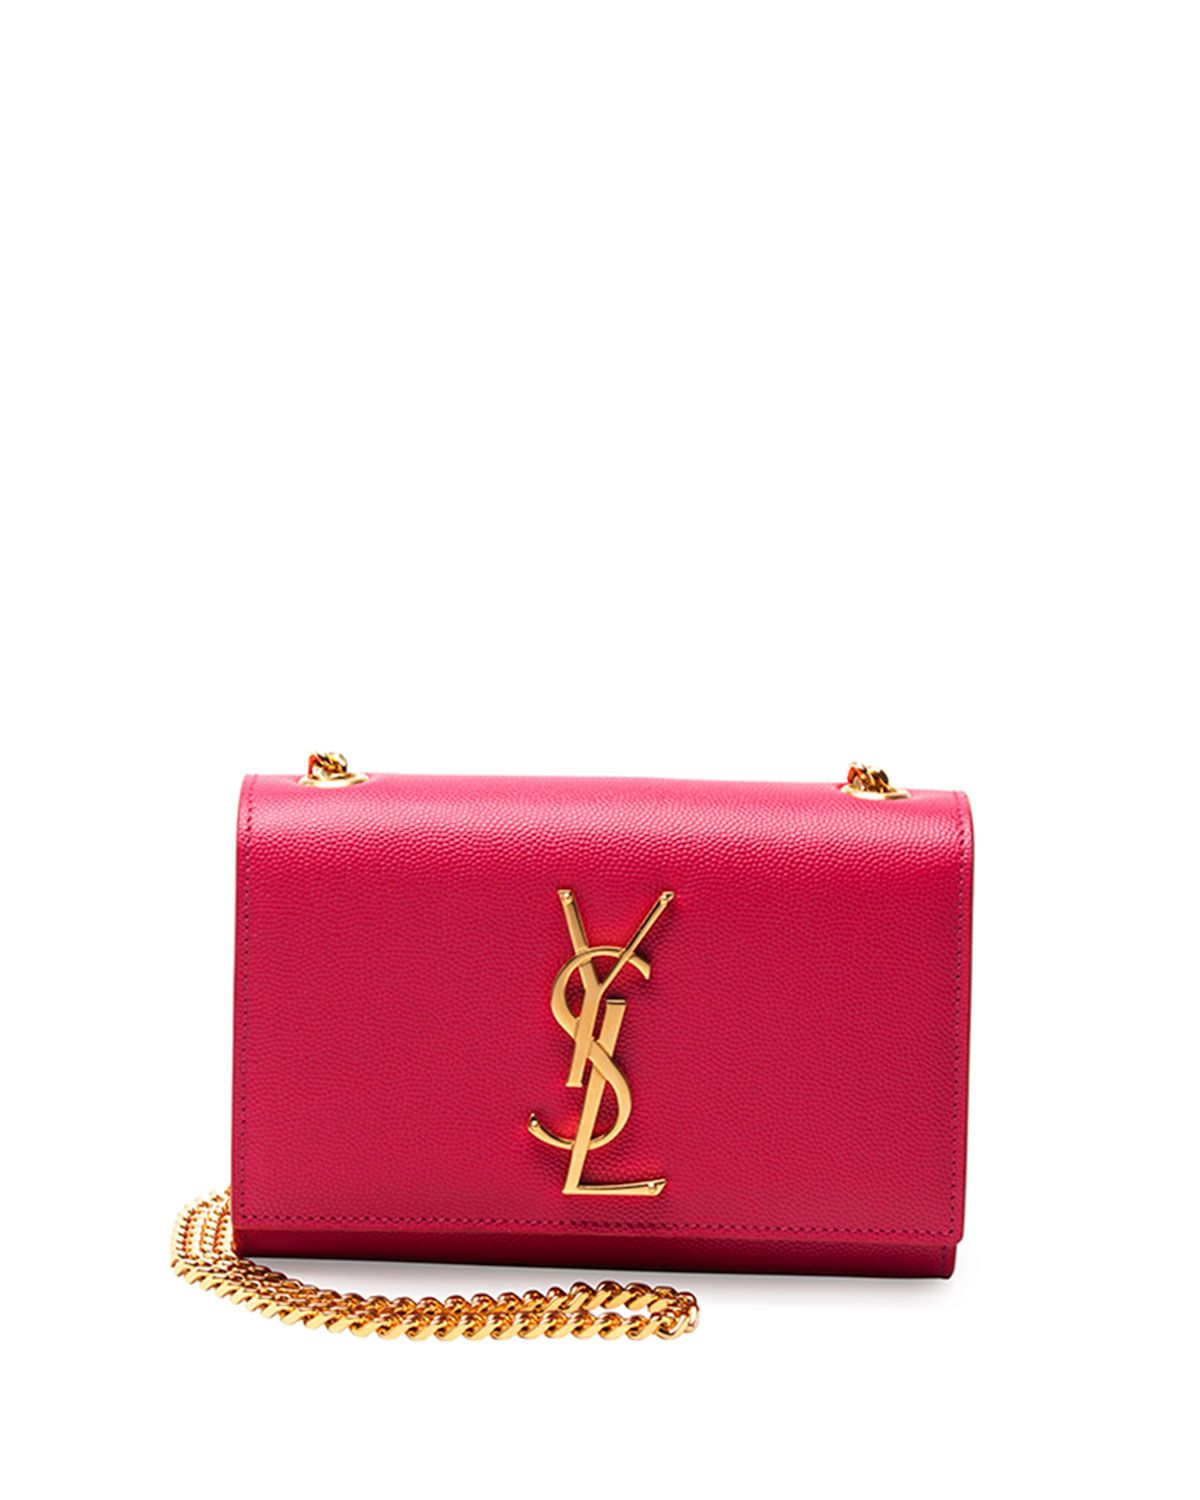 c4e1317470 Yves Saint Laurent Monogram Small Crossbody Bag